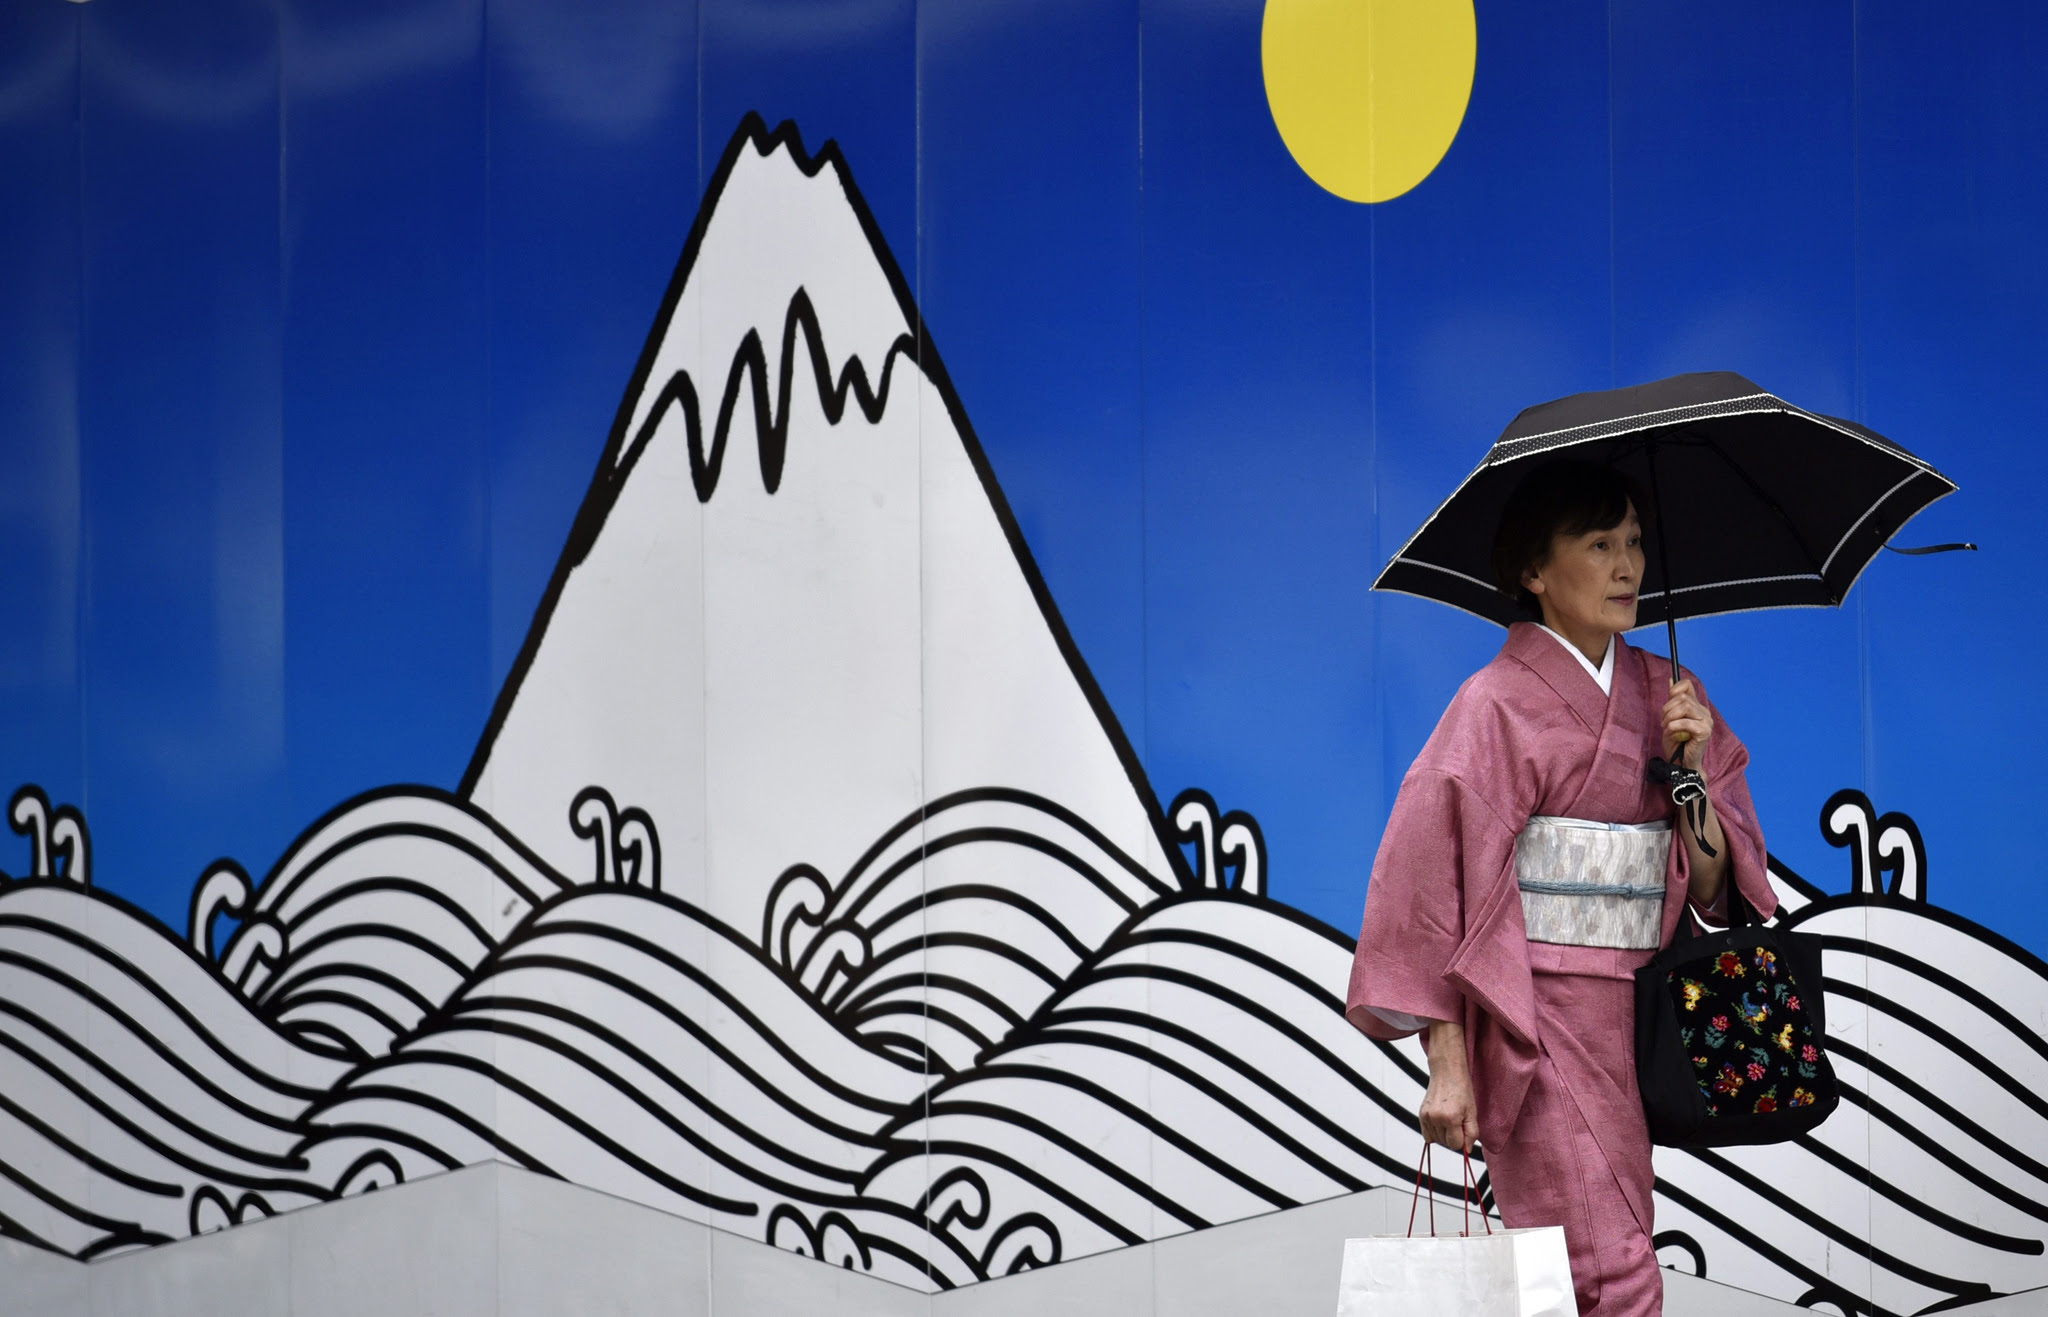 epa05393789 A woman clad in a kimono walks in front of a decorated construction site wall at Ginza shopping district in Tokyo, Japan, 27 June 2016. Tokyo stocks rebounded after dropping sharply on 24 June following the Brexit vote. The Nikkei Stock Average gained 357.19 points, or 2.39 percent, to close at 15,309.21.  EPA/FRANCK ROBICHON